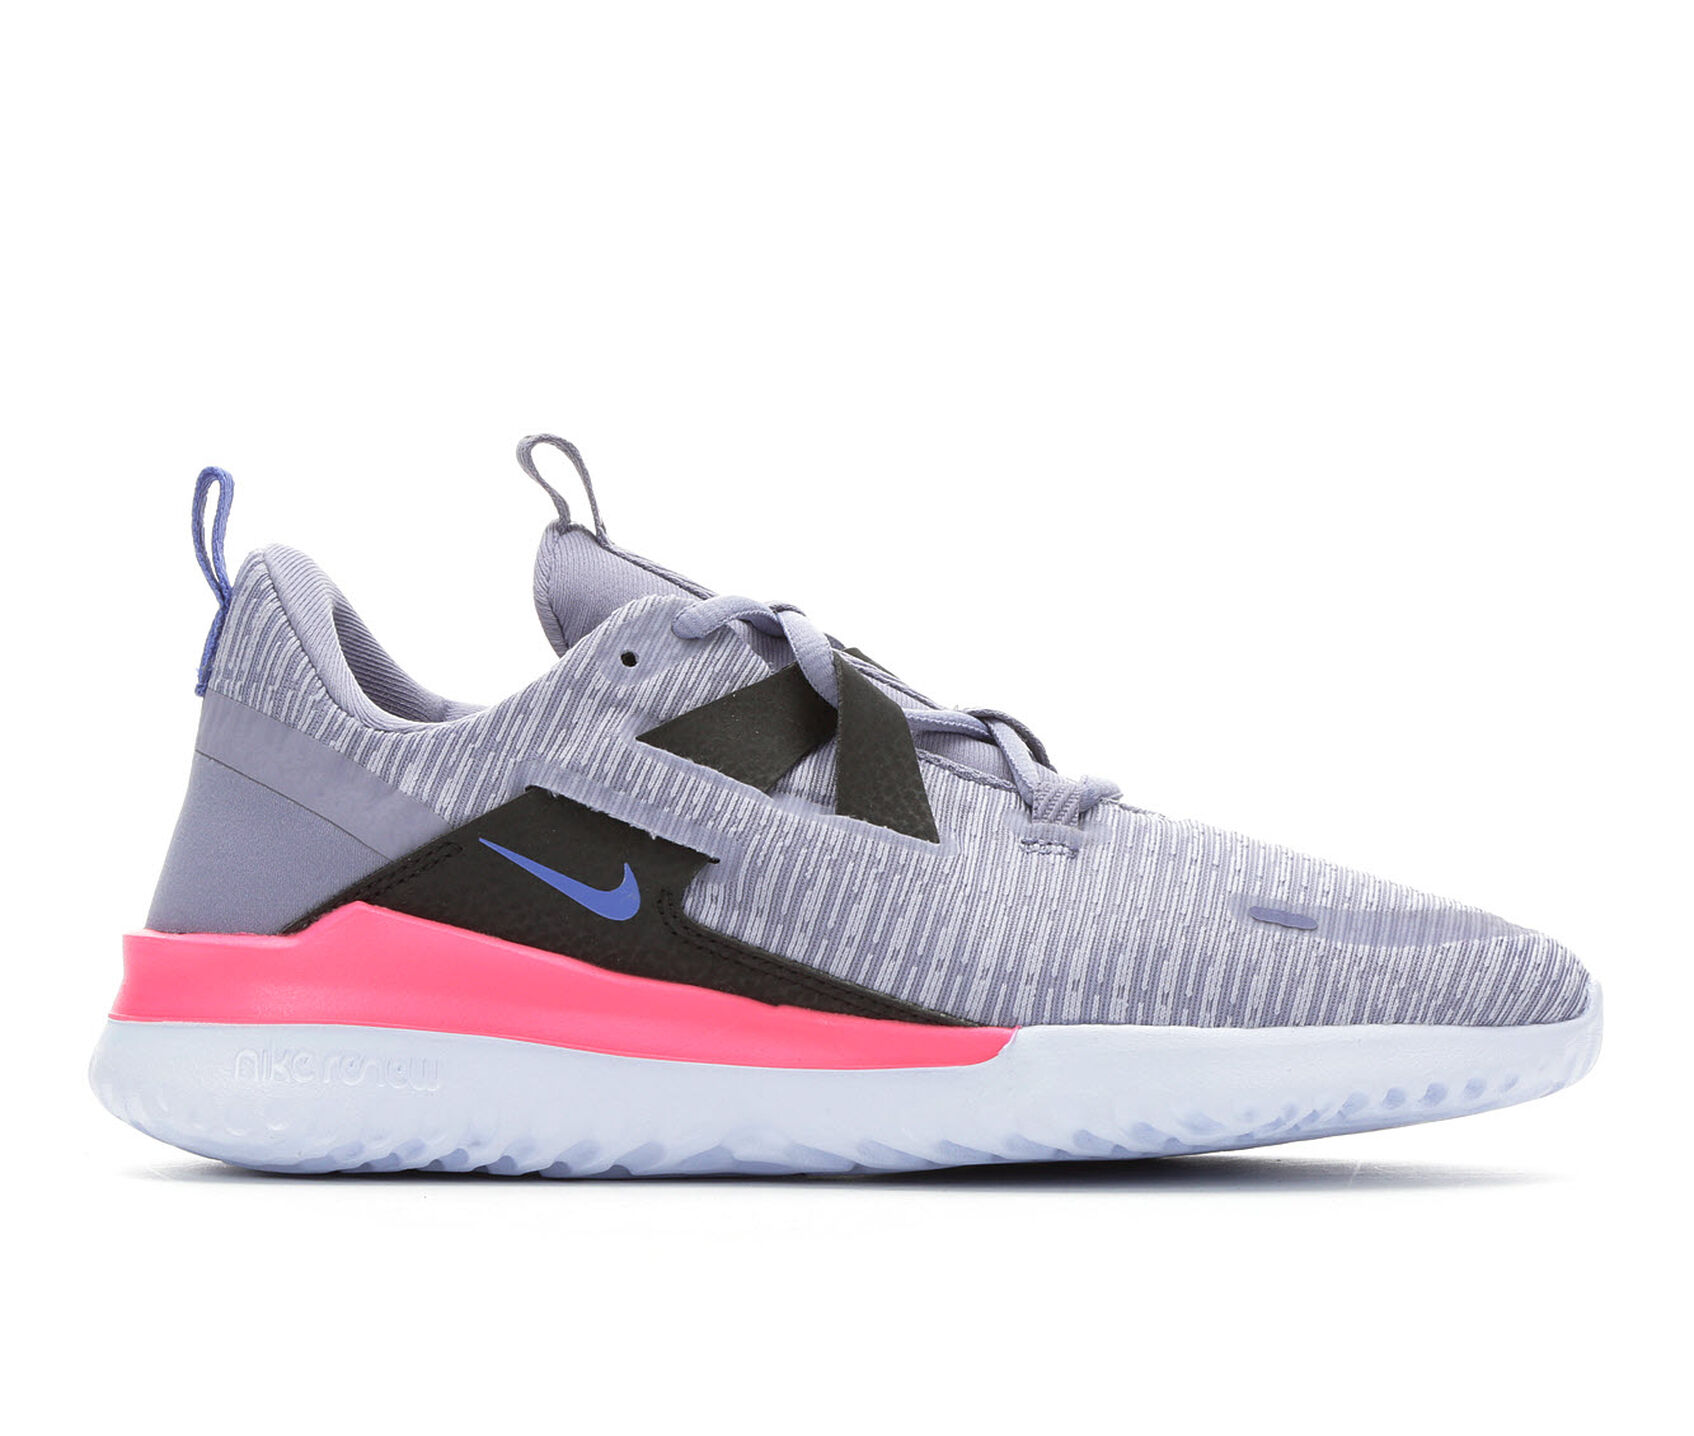 bdff6f57d8c ... Nike Renew Arena Running Shoes. Previous